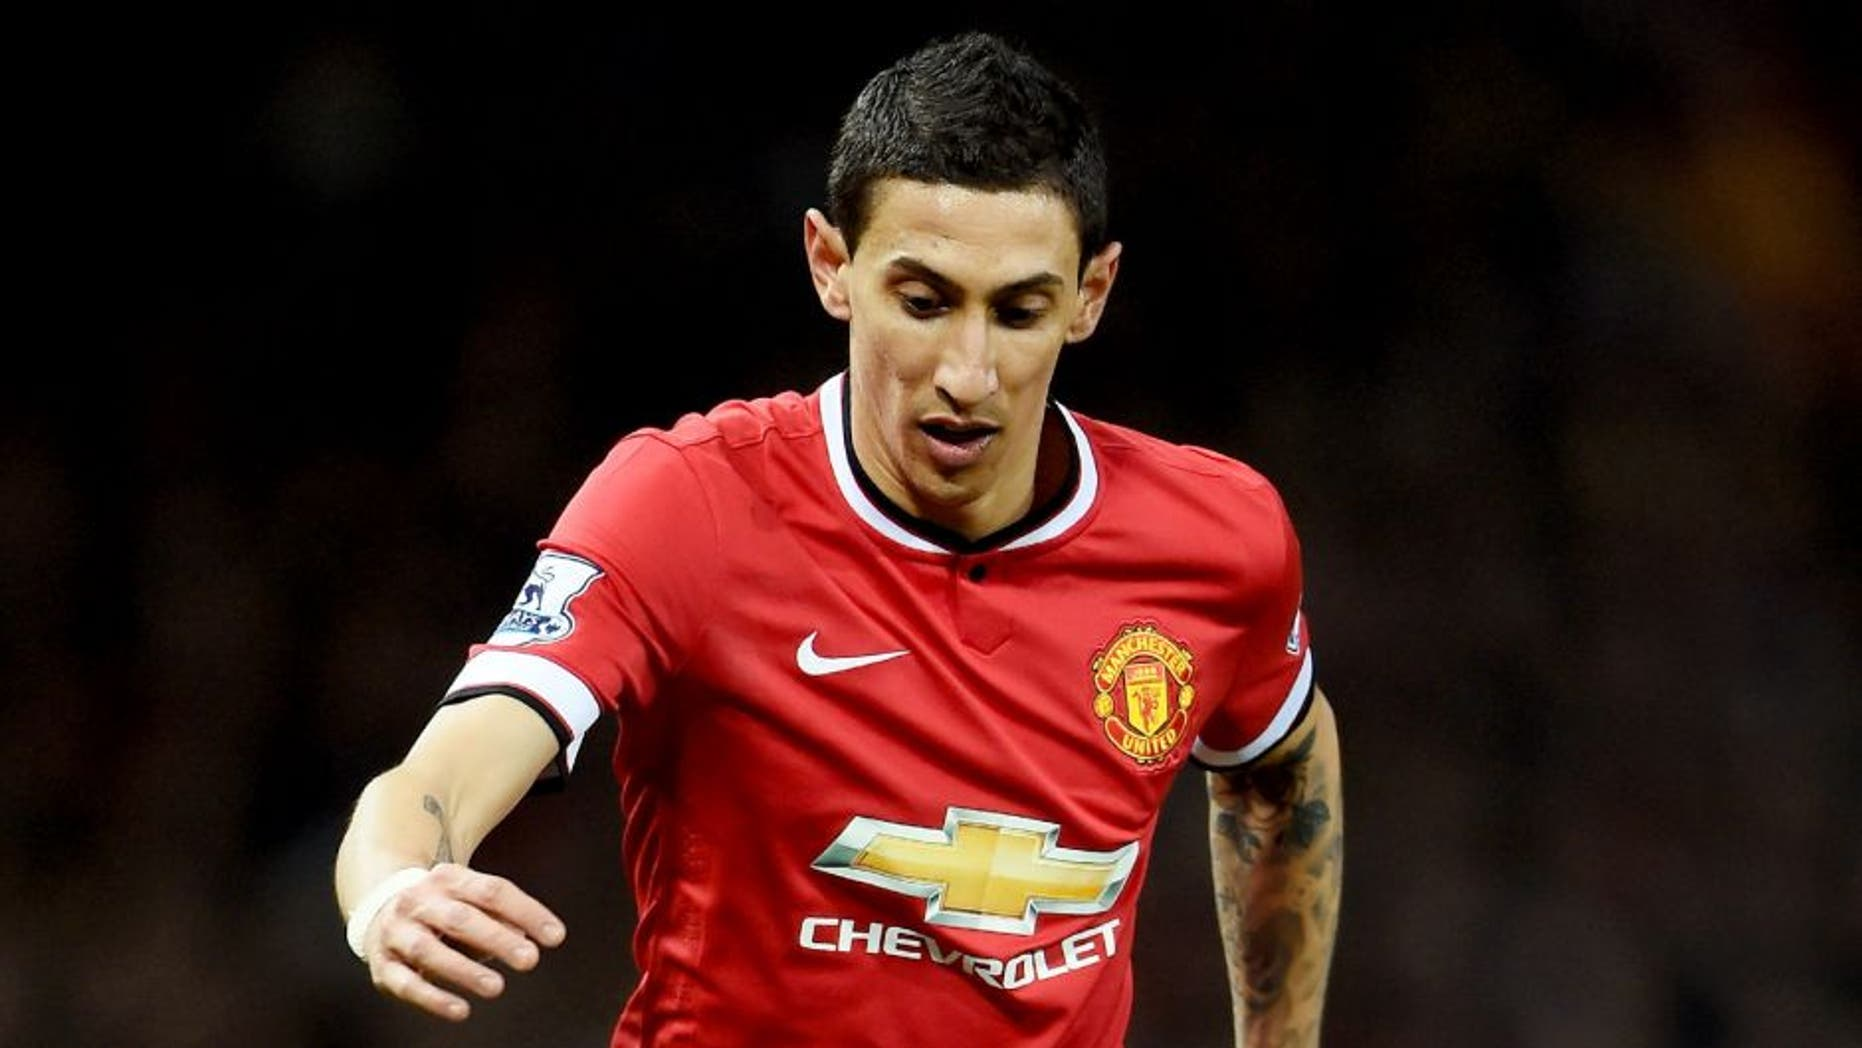 MANCHESTER, ENGLAND - MARCH 09: Angel di Maria of Manchester United controls the ball during the FA Cup Quarter Final match between Manchester United and Arsenal at Old Trafford on March 9, 2015 in Manchester, England. (Photo by Laurence Griffiths/Getty Images)